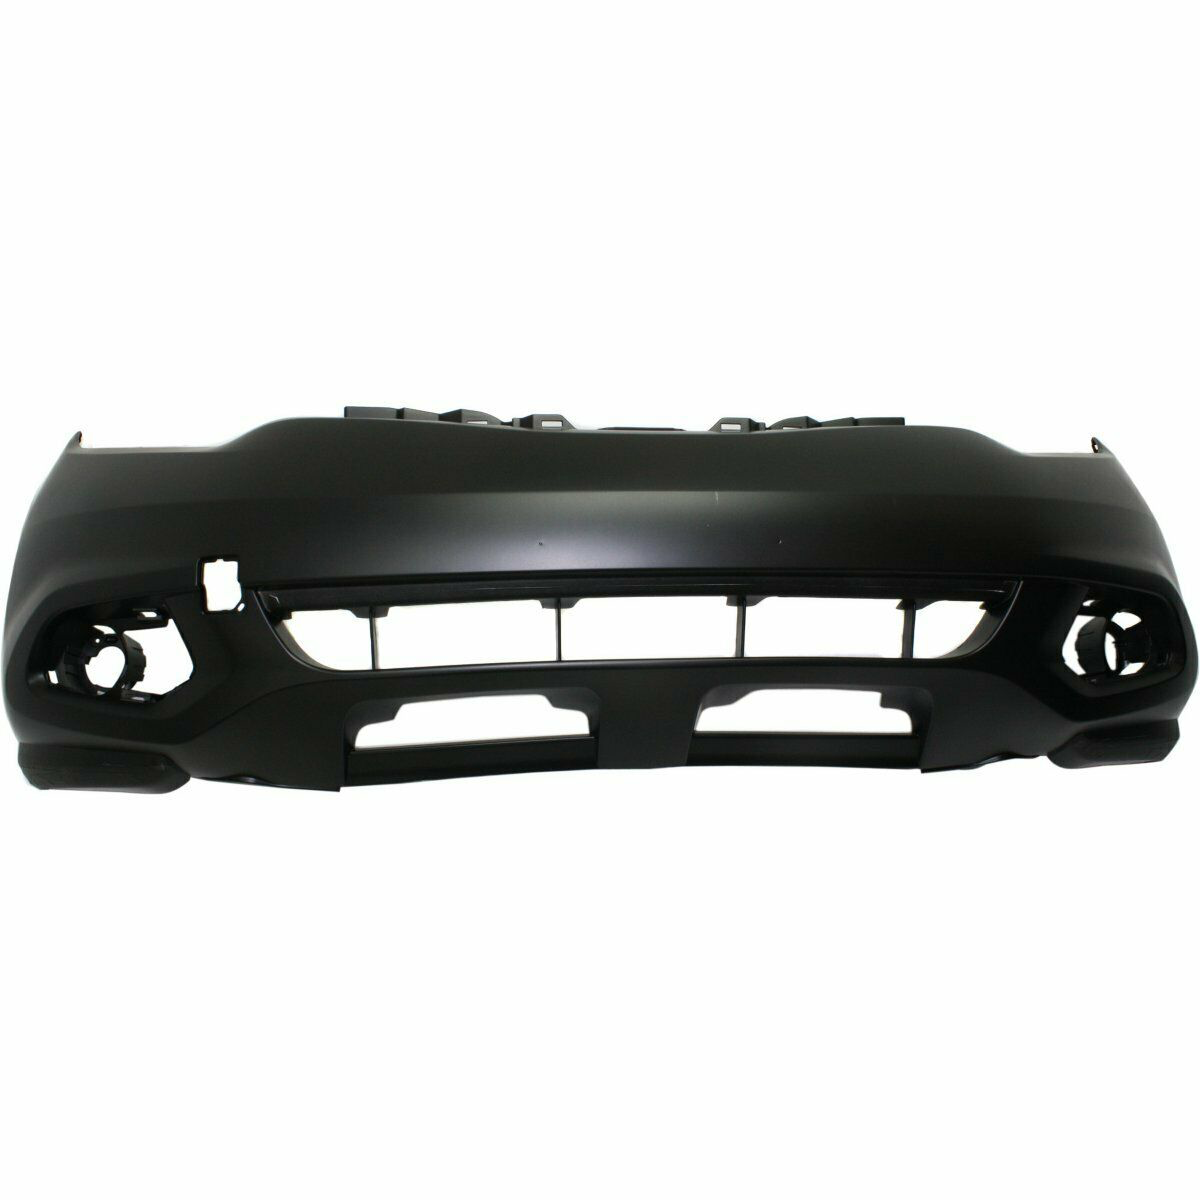 2011-2014 Nissan Murano Front Bumper Painted to Match